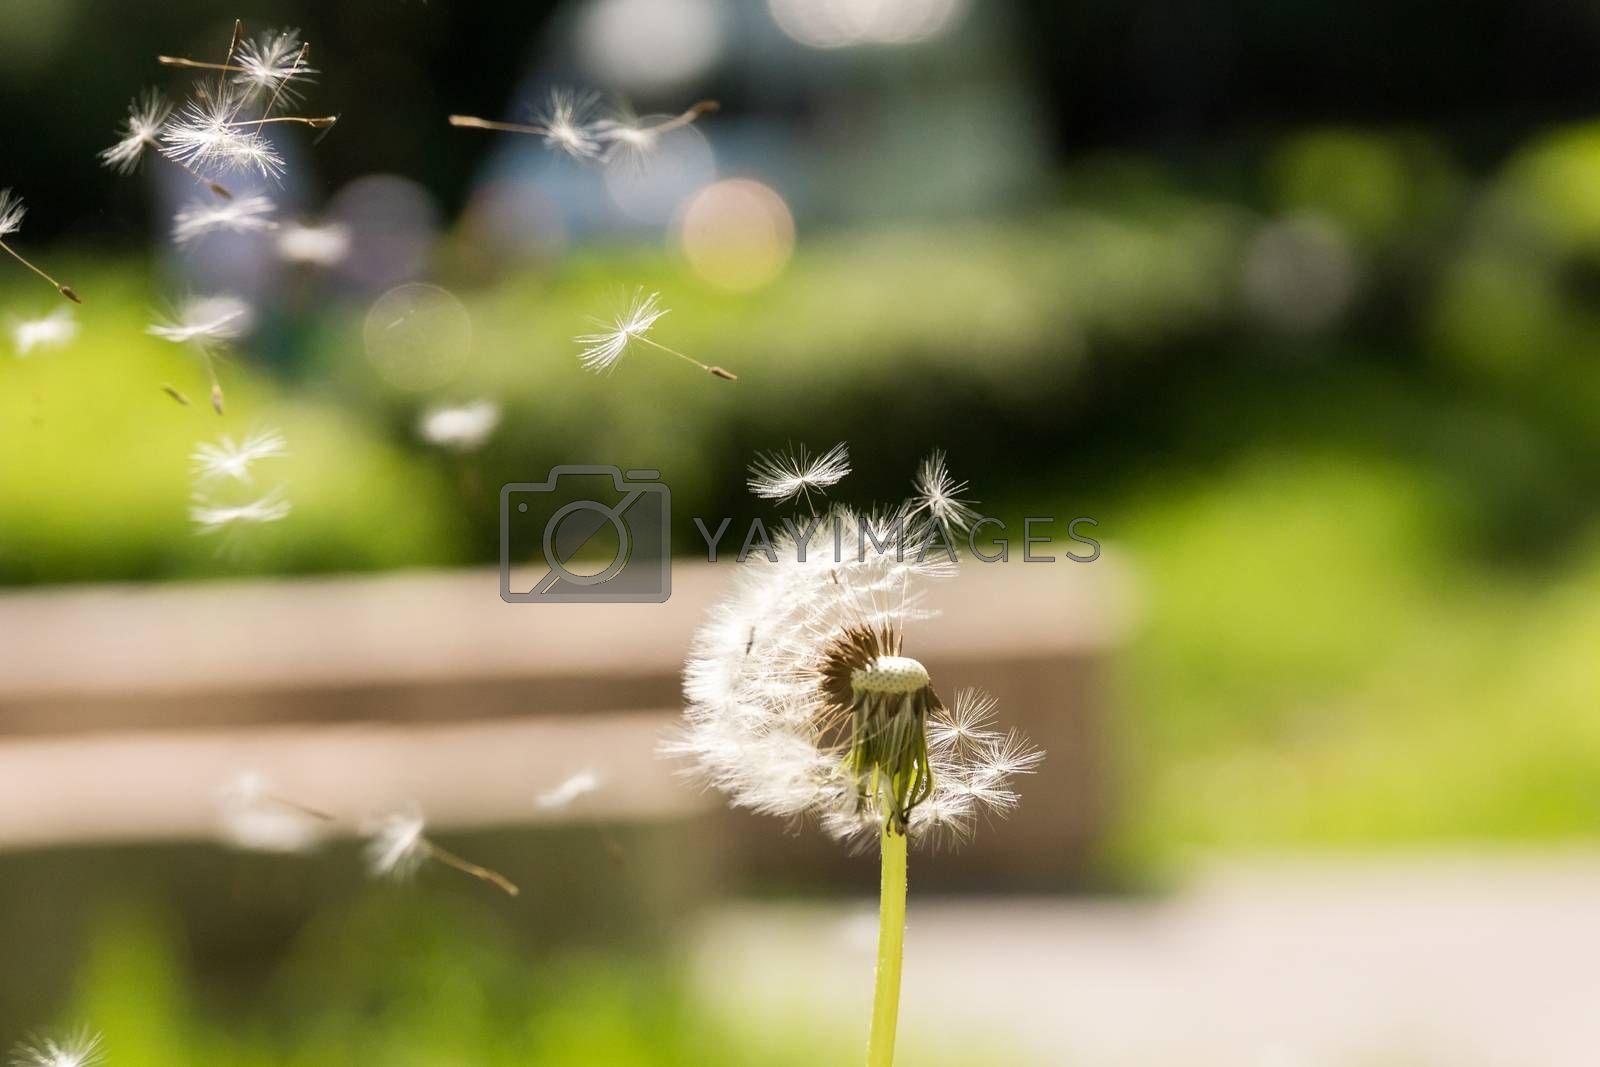 The photo depicts the dandelion fly away in the wind